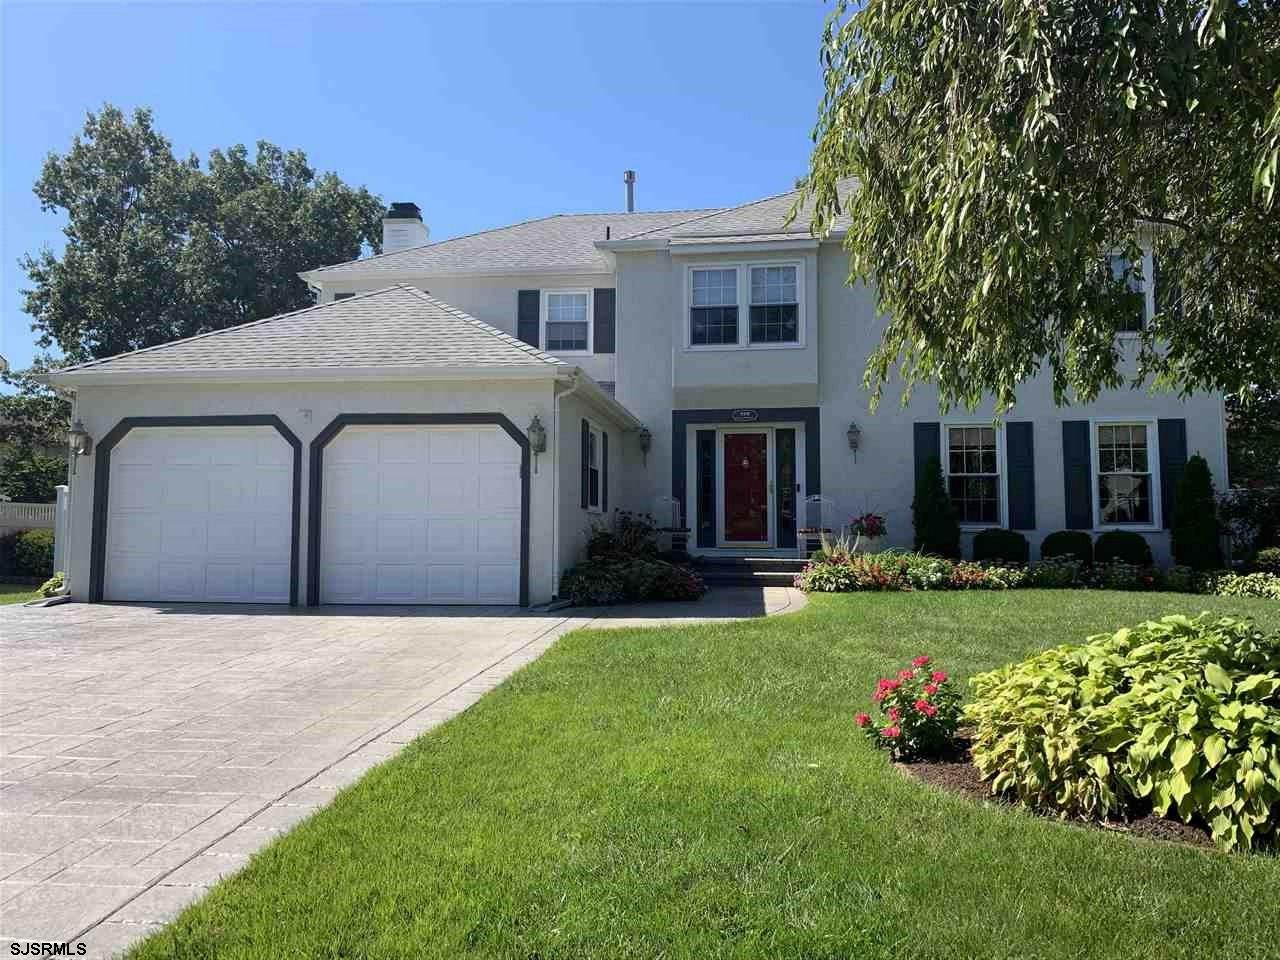 *SHIRES SHOWSTOPPER* Welcome to this 4Bdrm,2.5Bath 2 Story turn-key Stunner! Love at first sight as